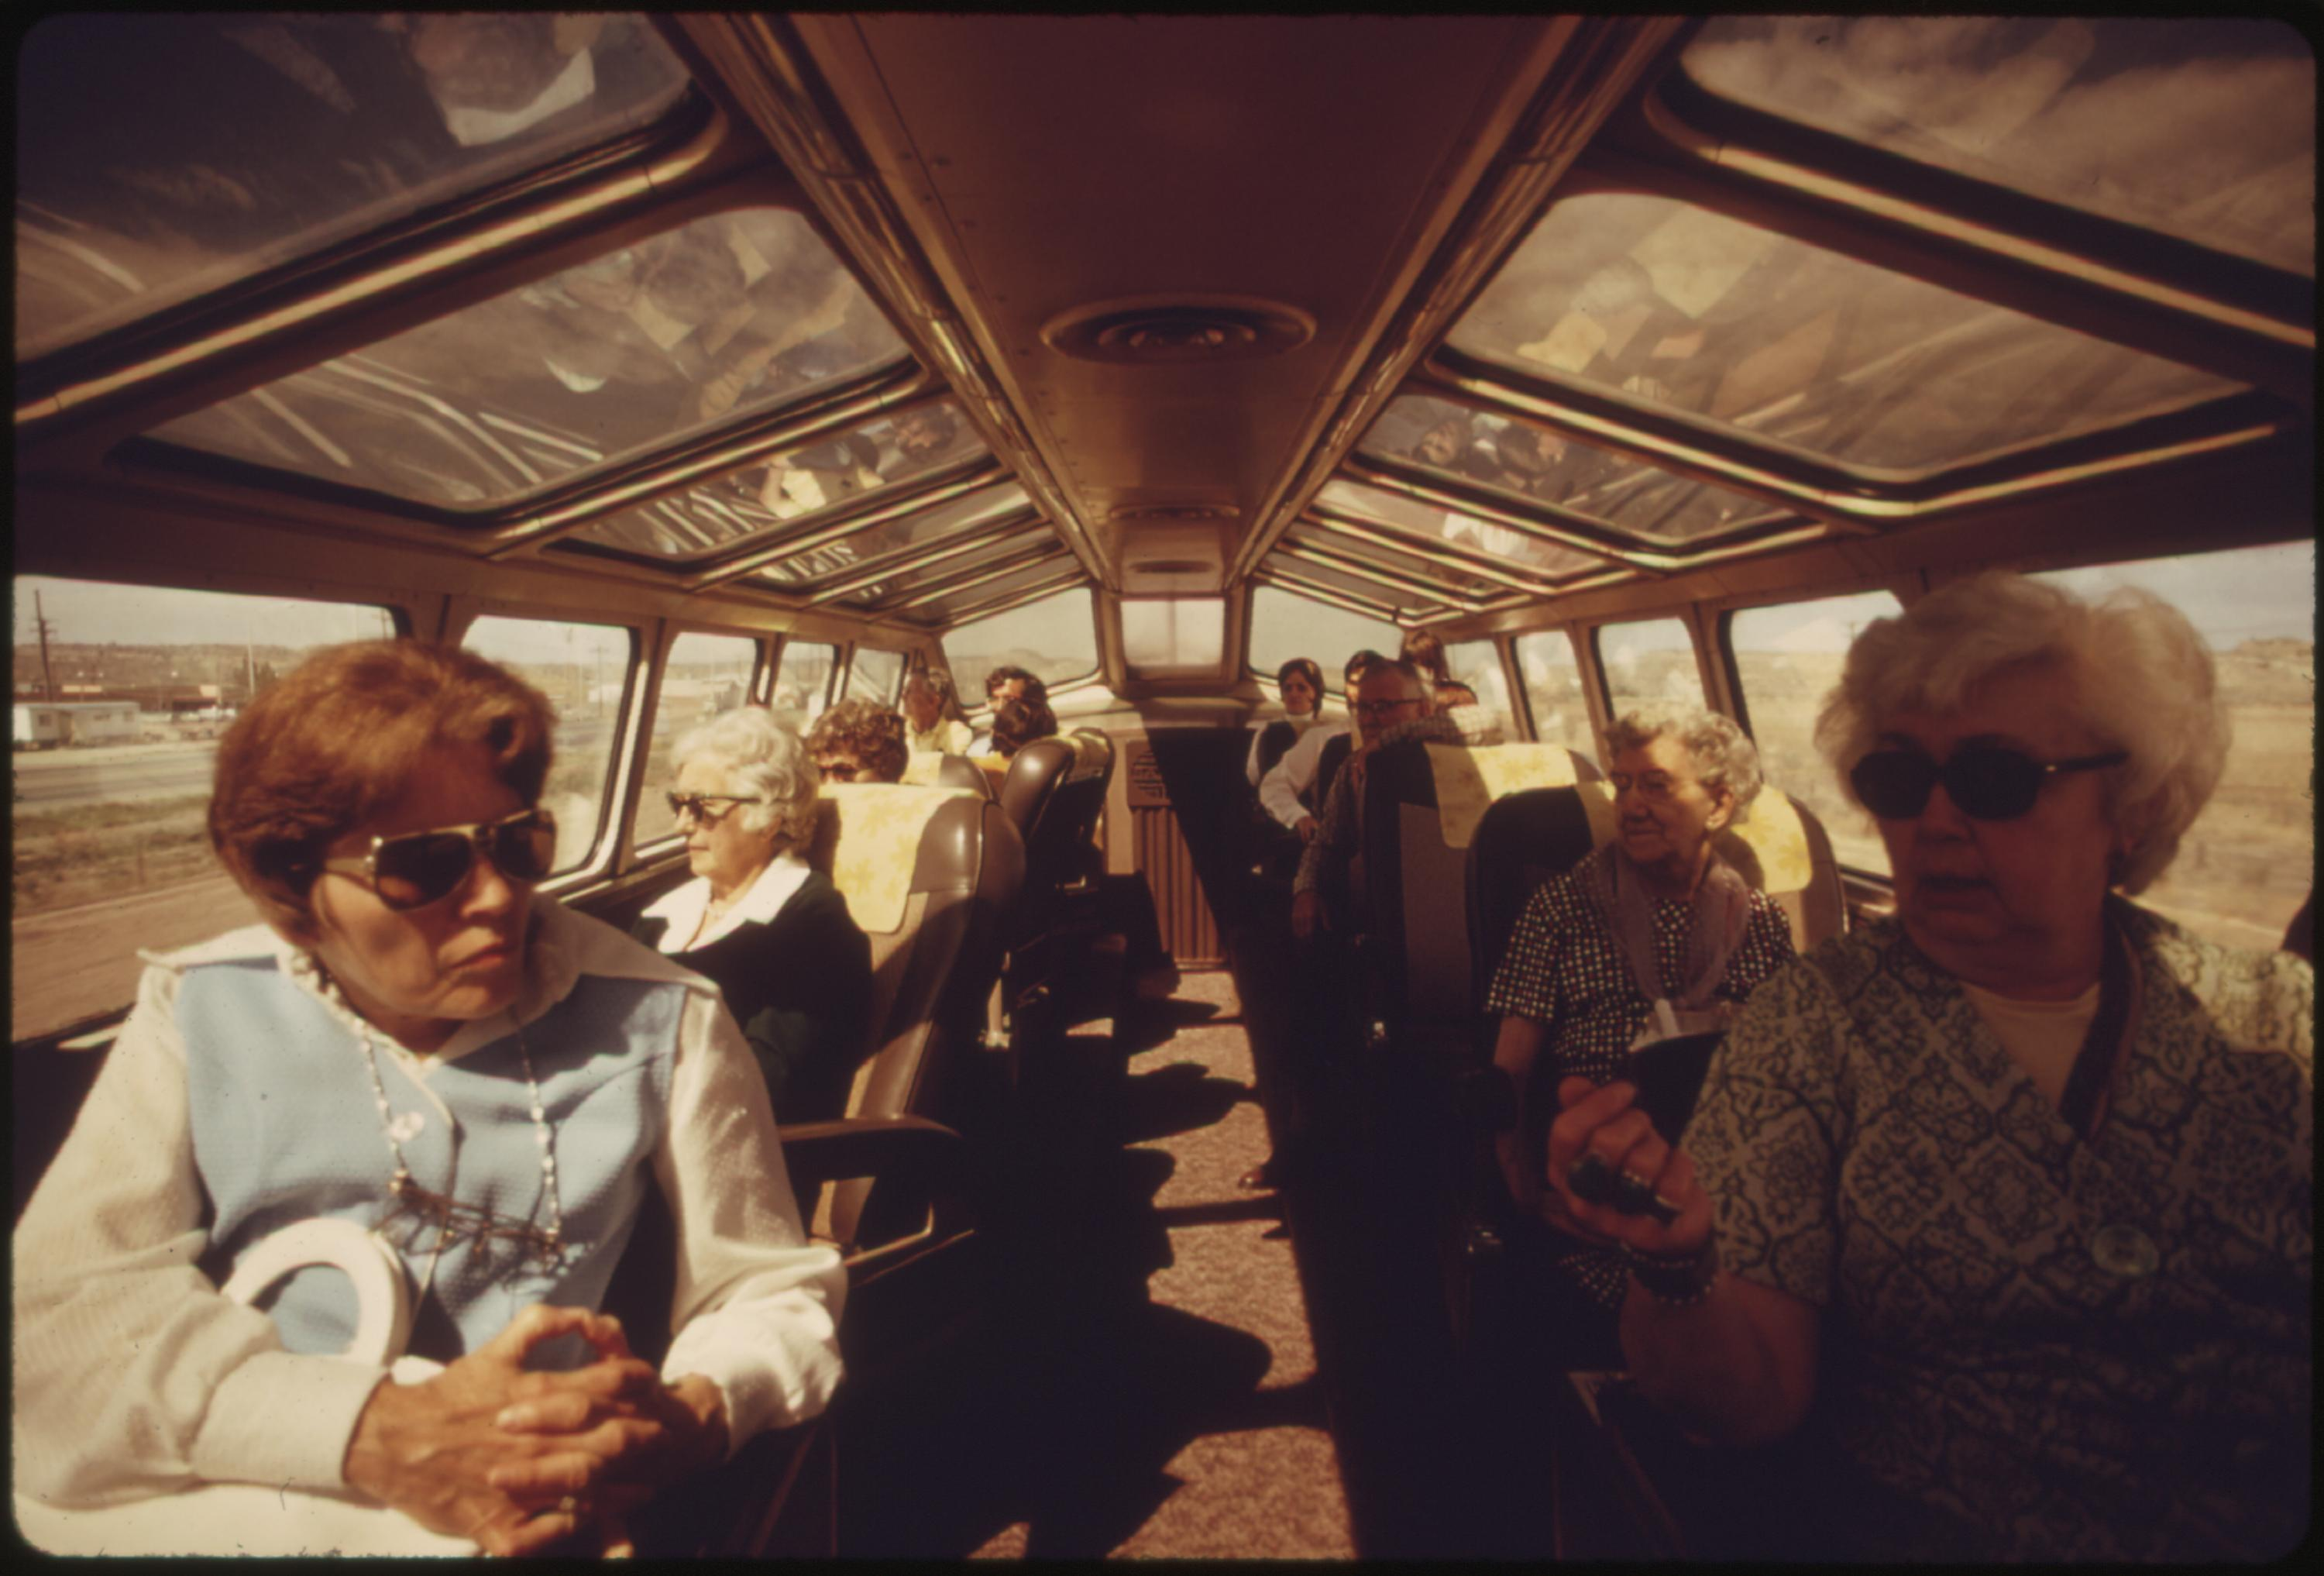 The dome car on Amtrak trains is a popular place for passengers who want to watch the scenery unfold, June 1974